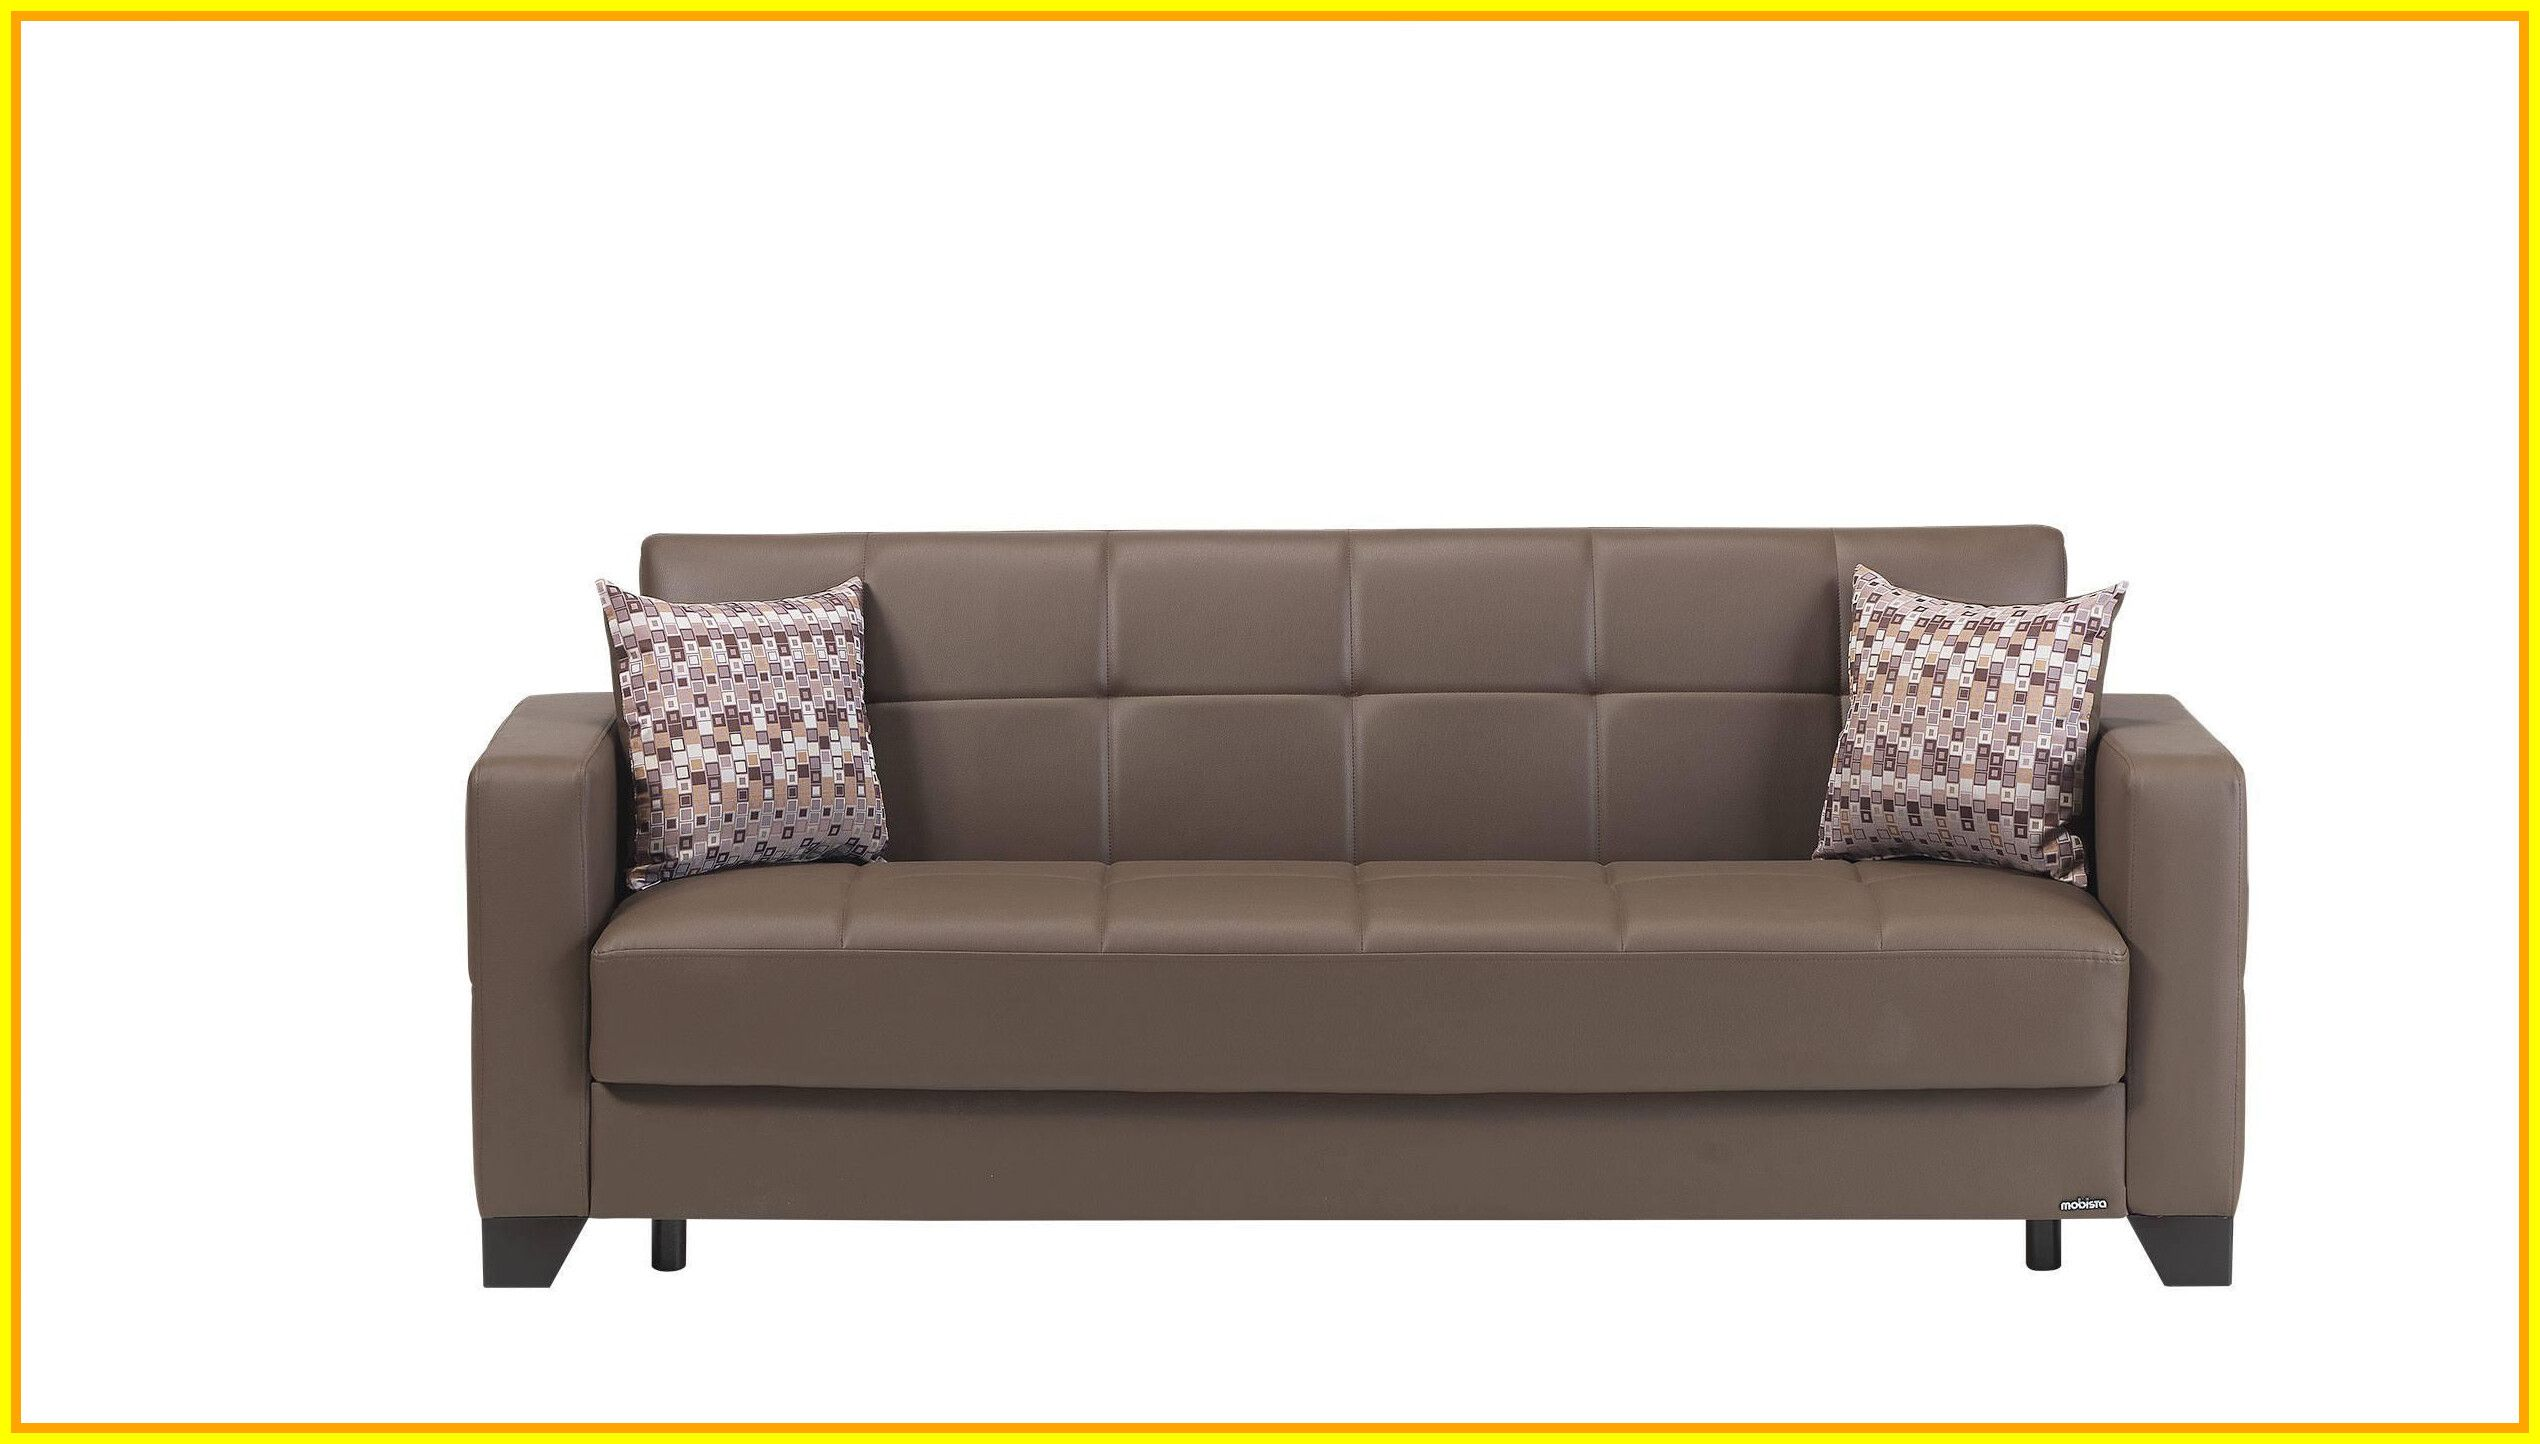 80 Reference Of Cheap Couch Covers Near Me In 2020 Sofa And Loveseat Set Sofa Bed With Storage Sofa Bed Sale